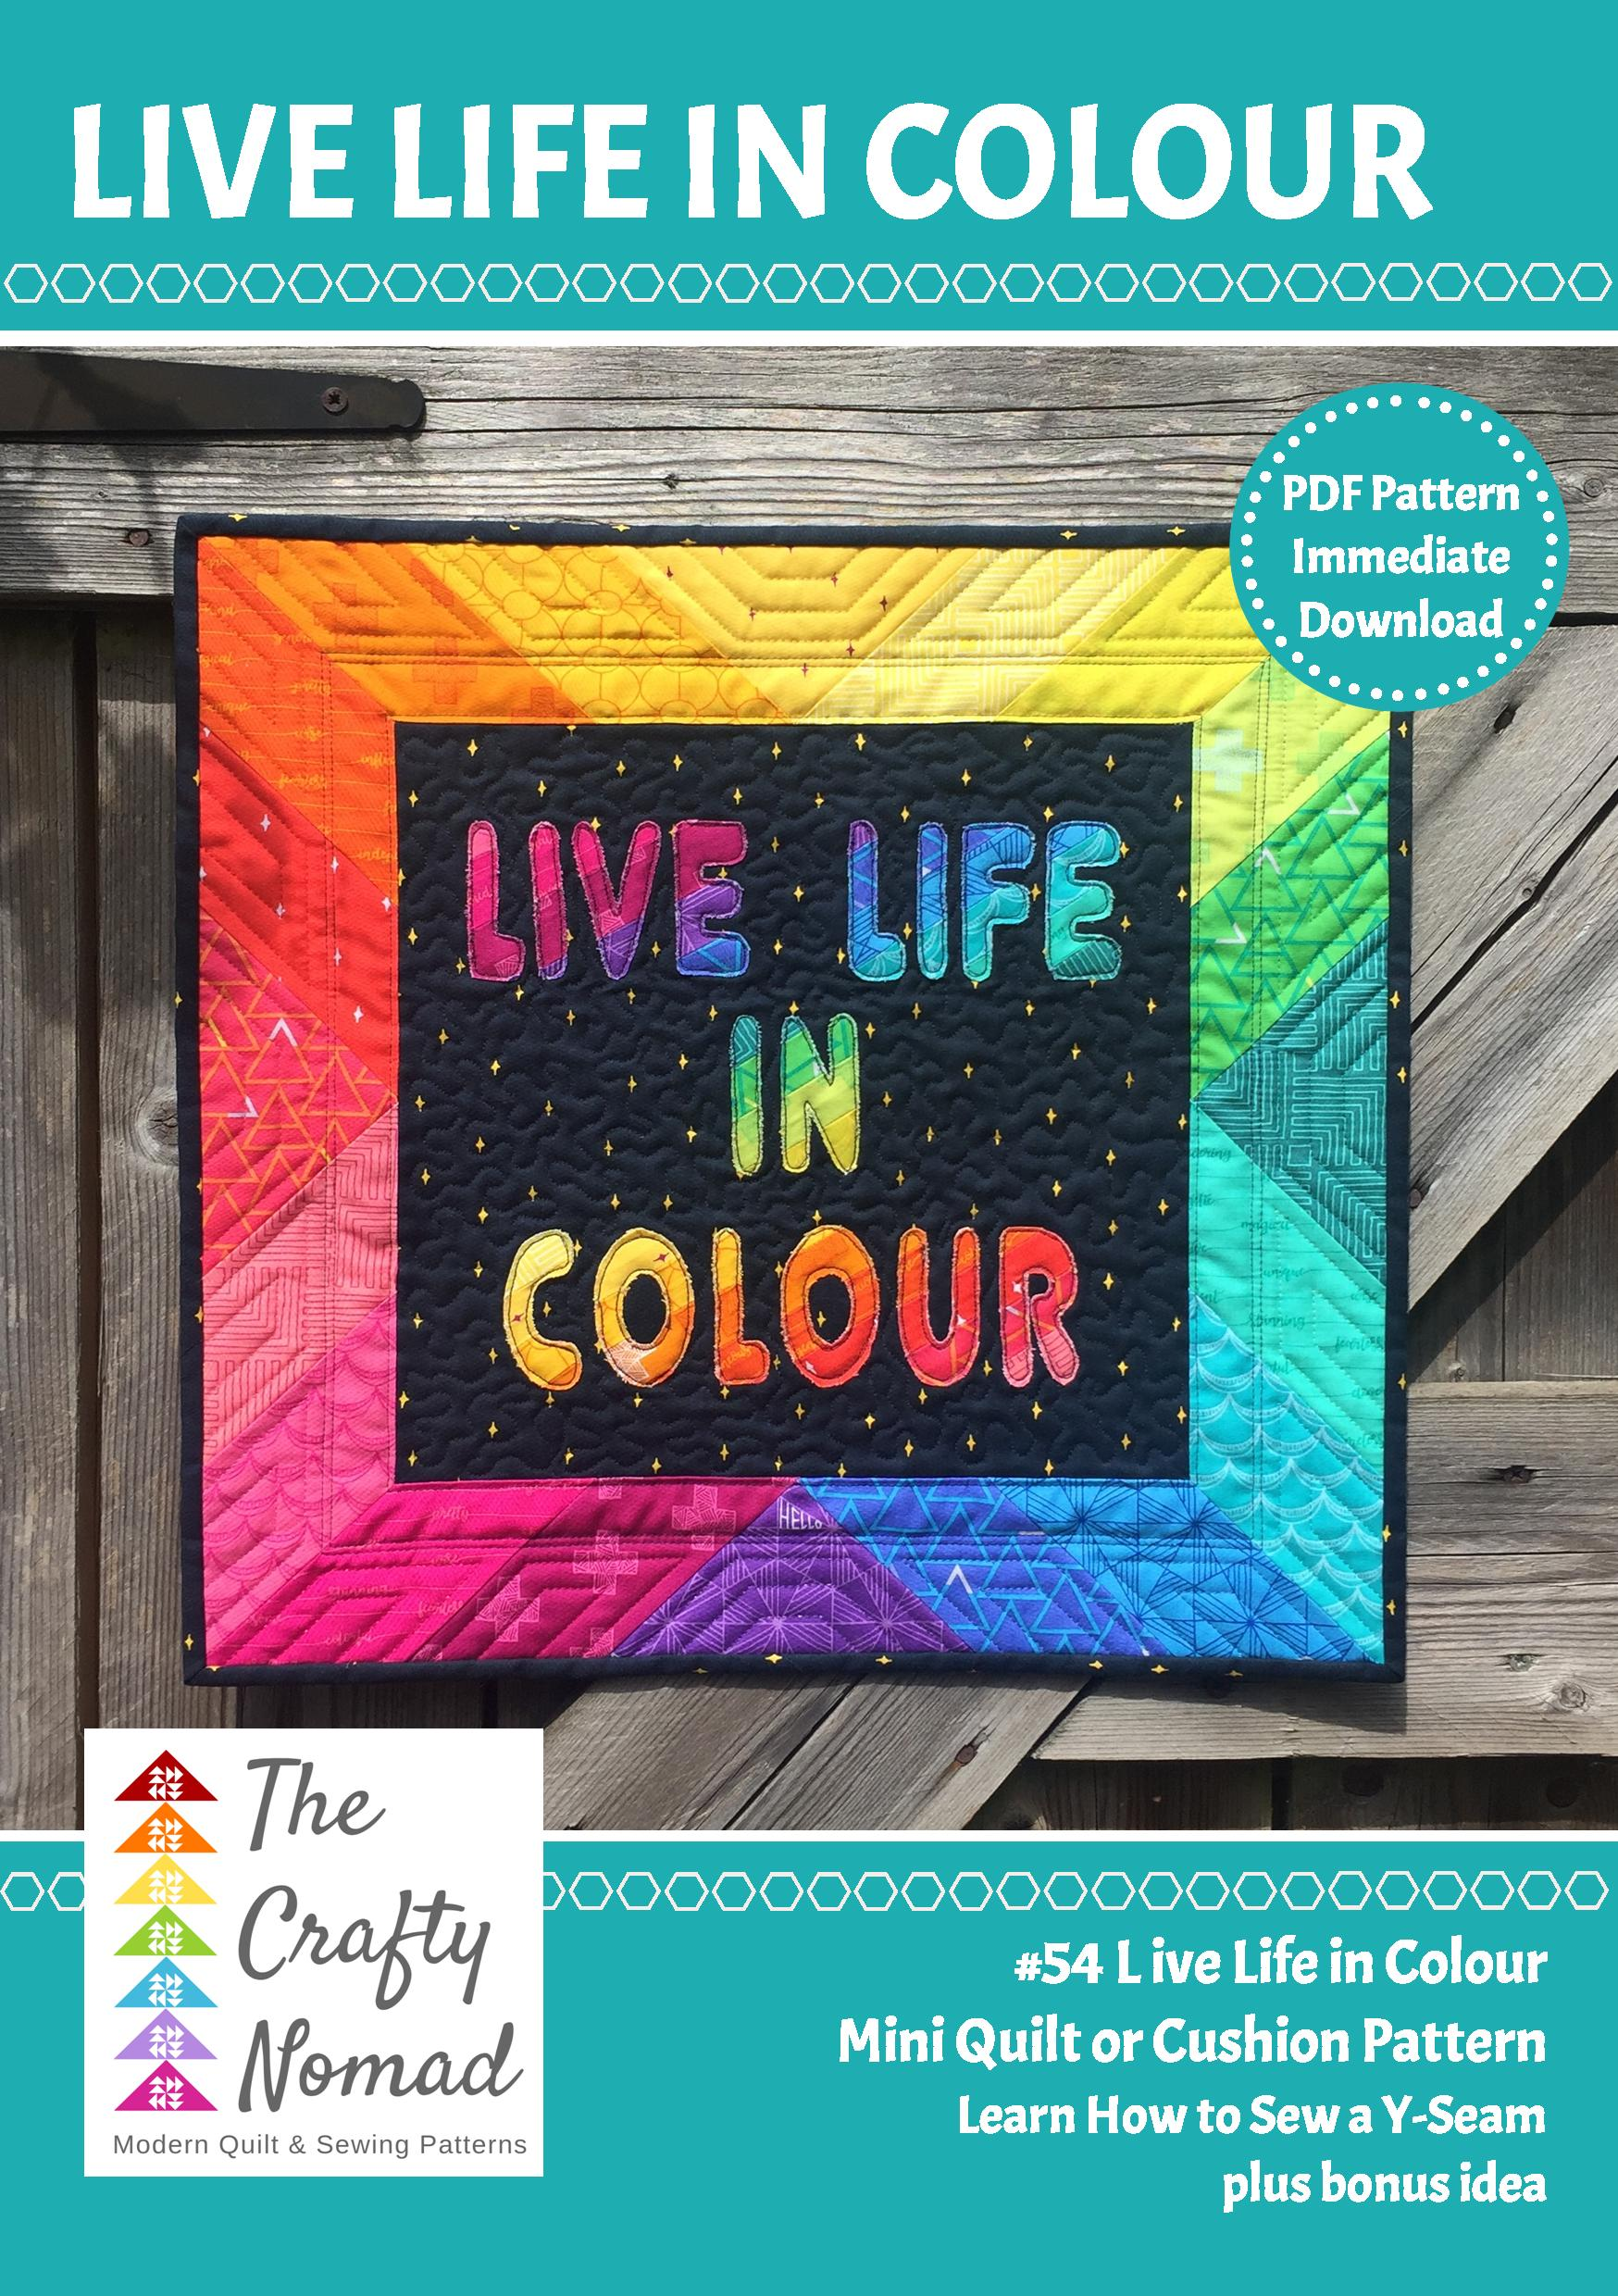 Live Life in Colour Pattern The Crafty Nomad PDF.jpg